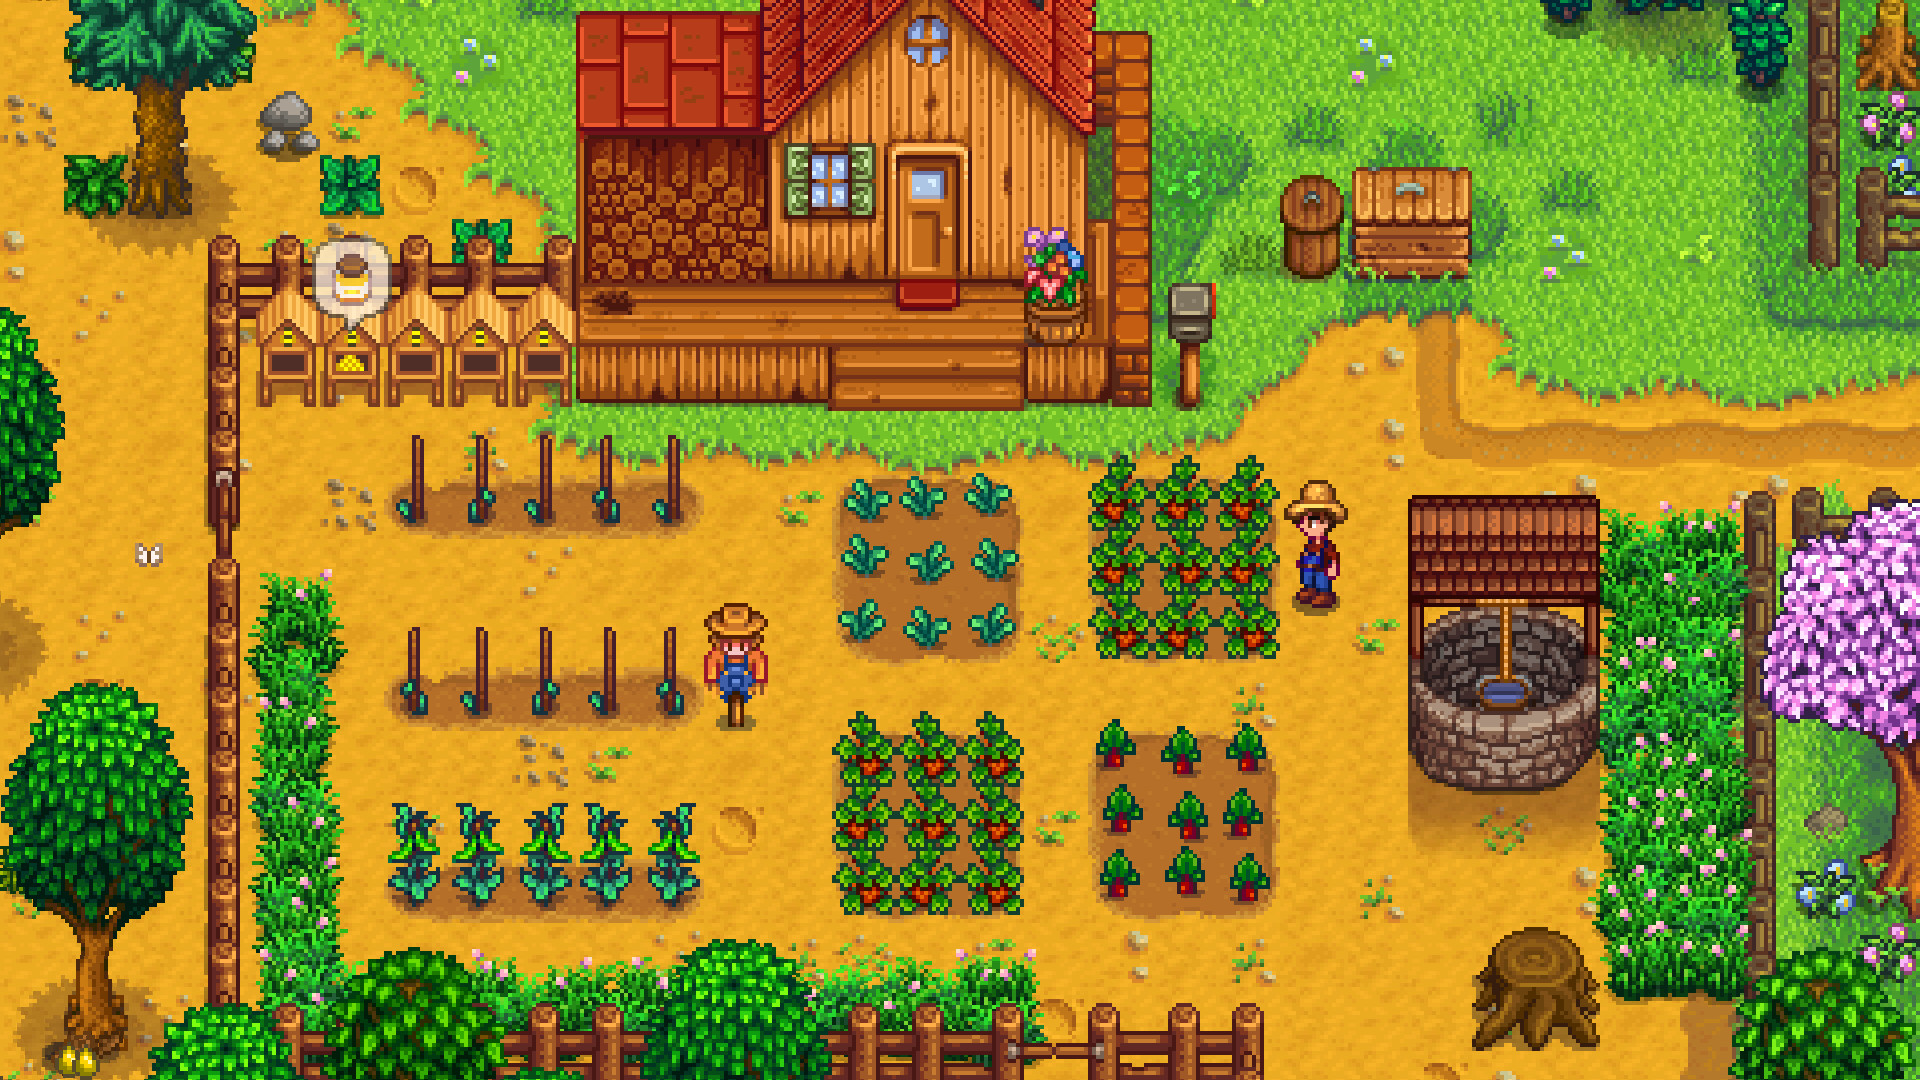 Stardew Valley is coming to iOS later this month